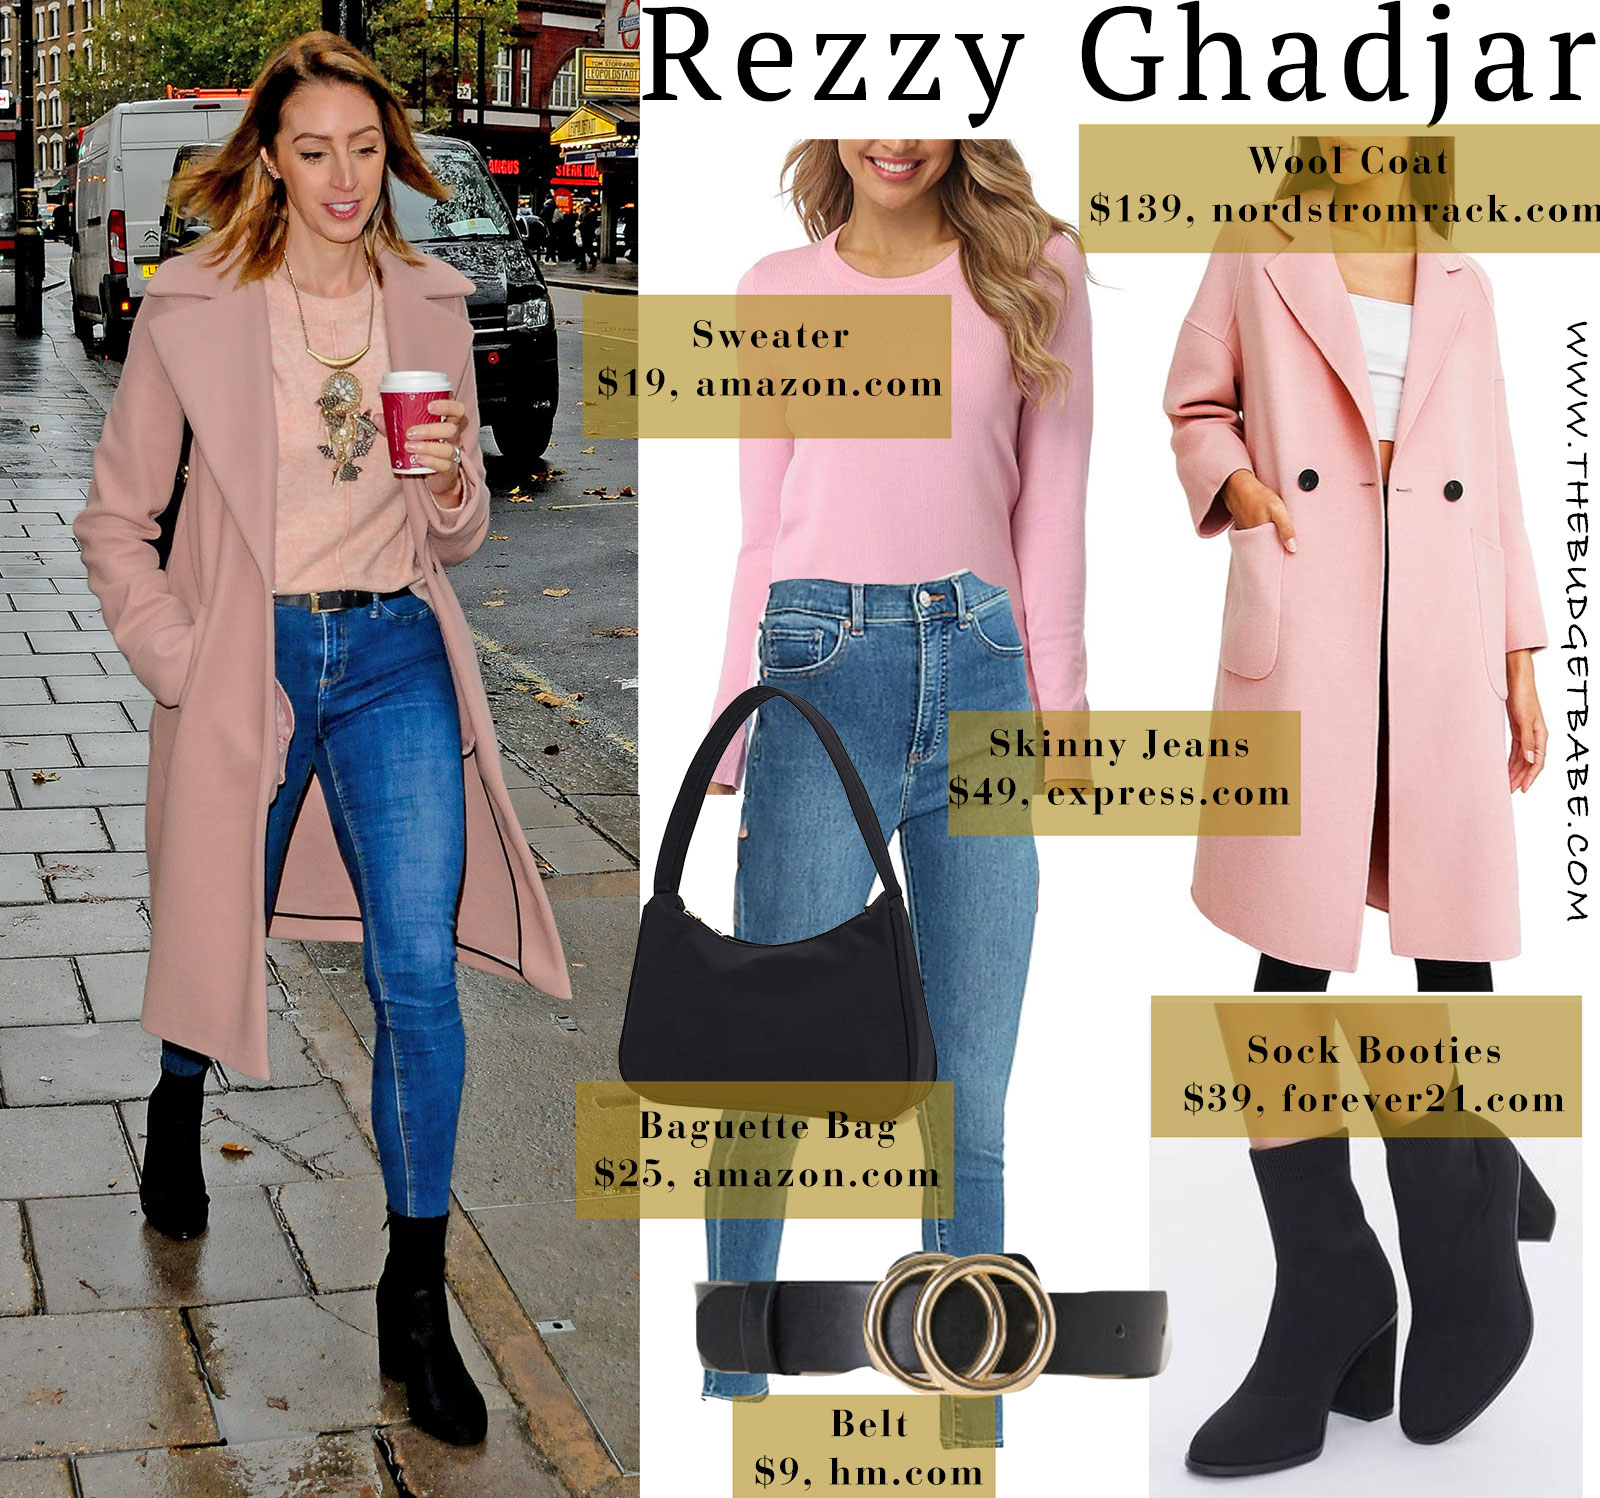 Rezzy Ghadjar pink coat and sweater with black accents look for less London style